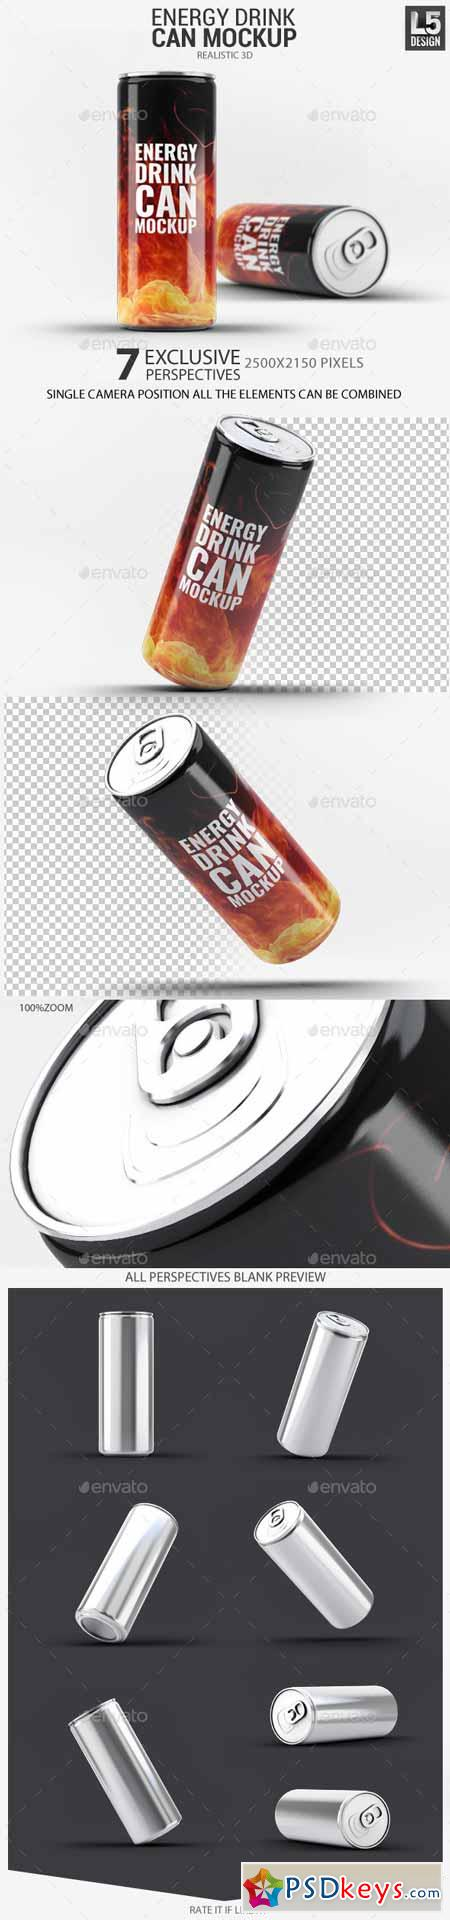 Energy Drink Can Mock-Up 11315680